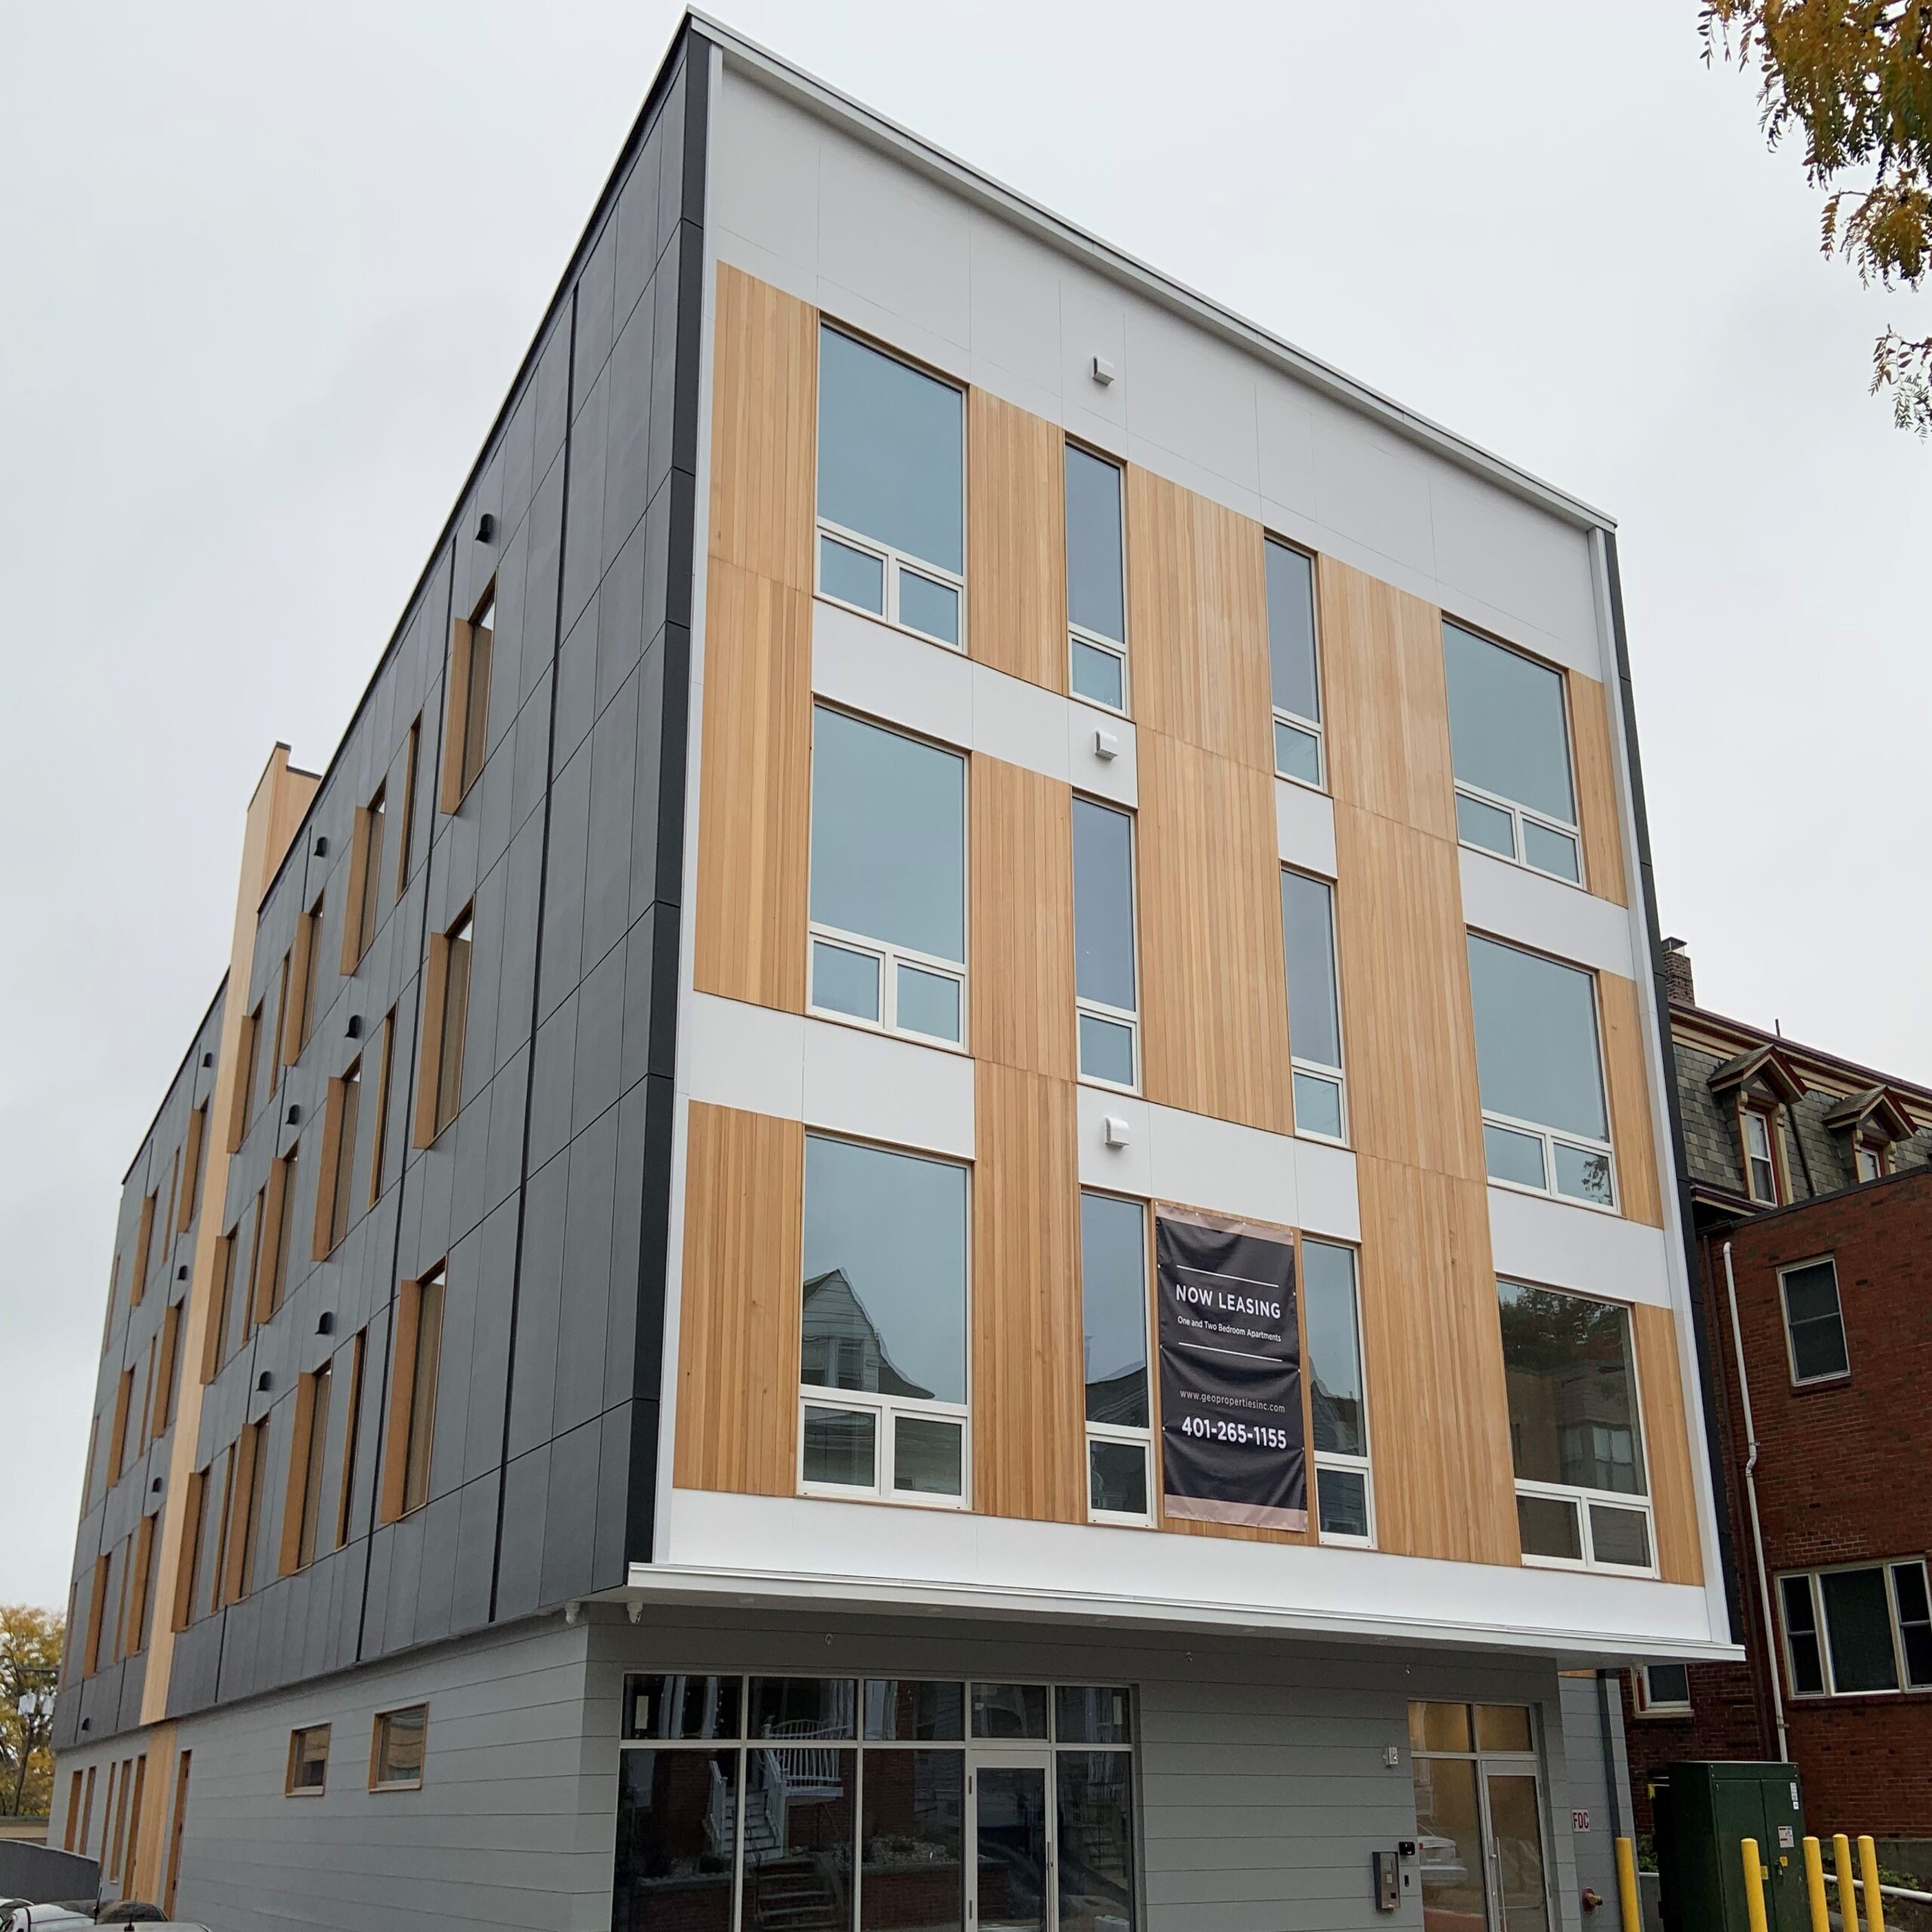 New Modern Apartments on East Side